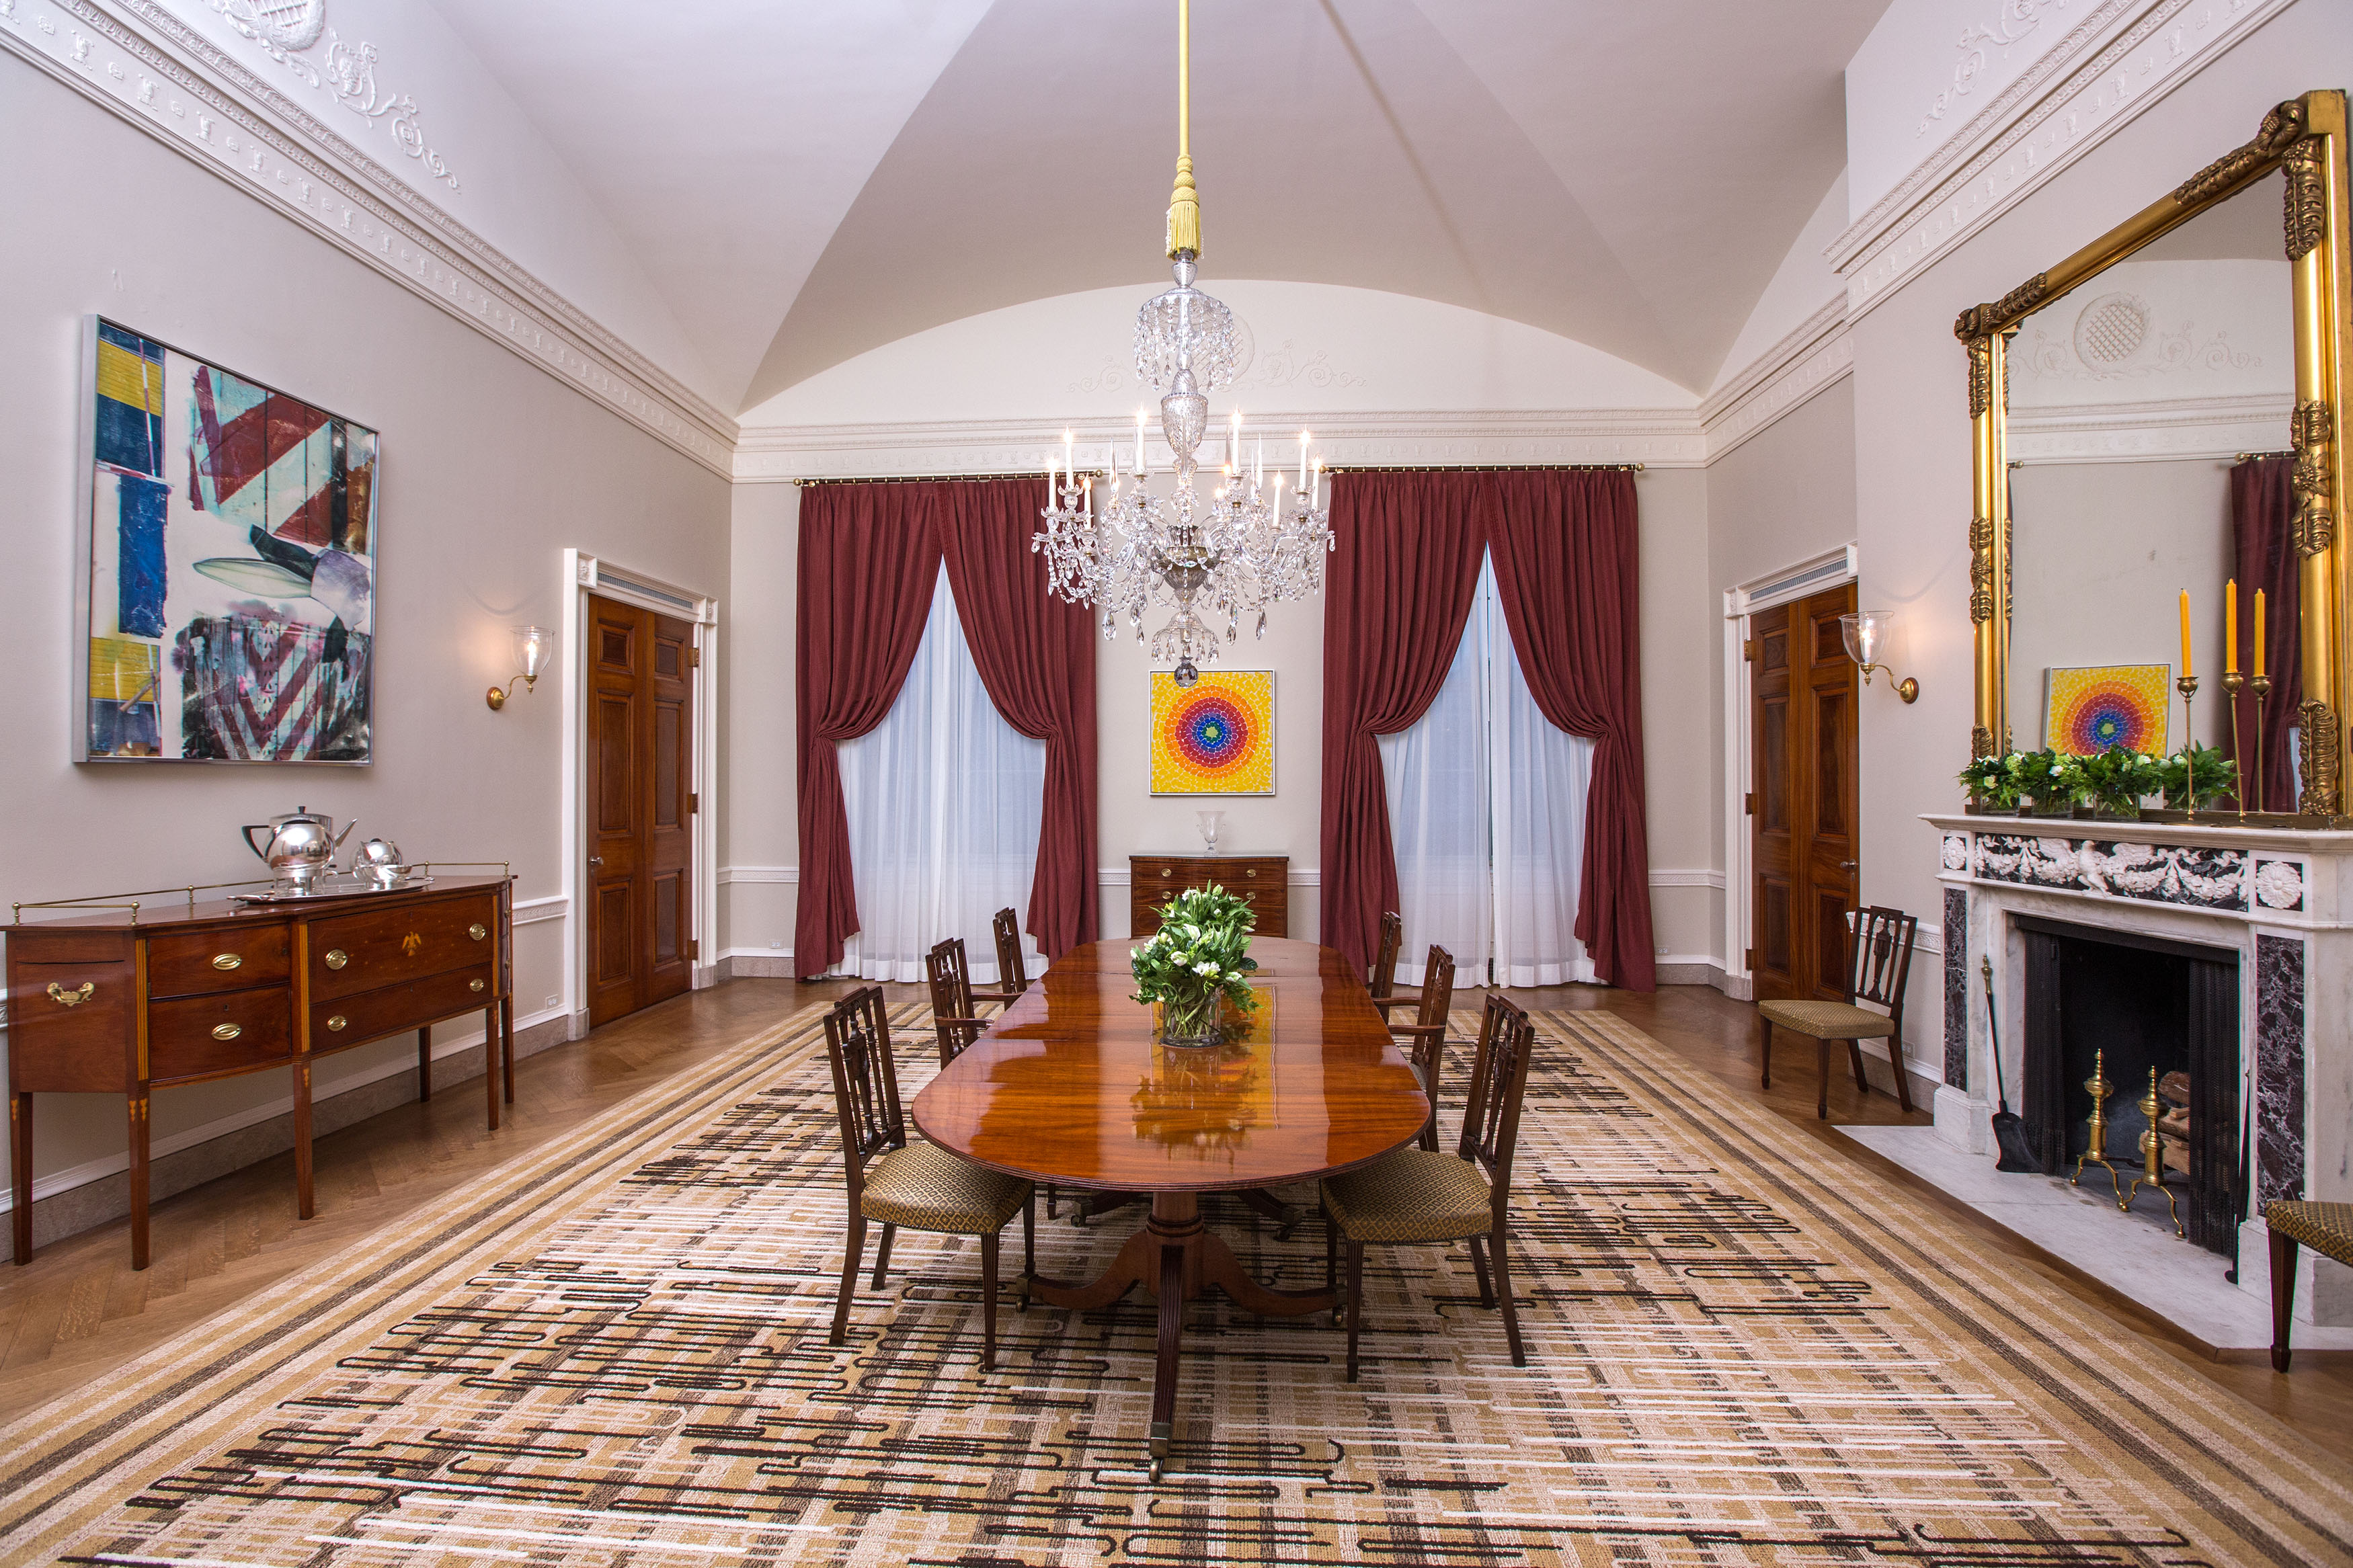 Family Dining Room Ideas Part - 42: The Old Family Dining Room Of The White House, Feb. 9, 2015.